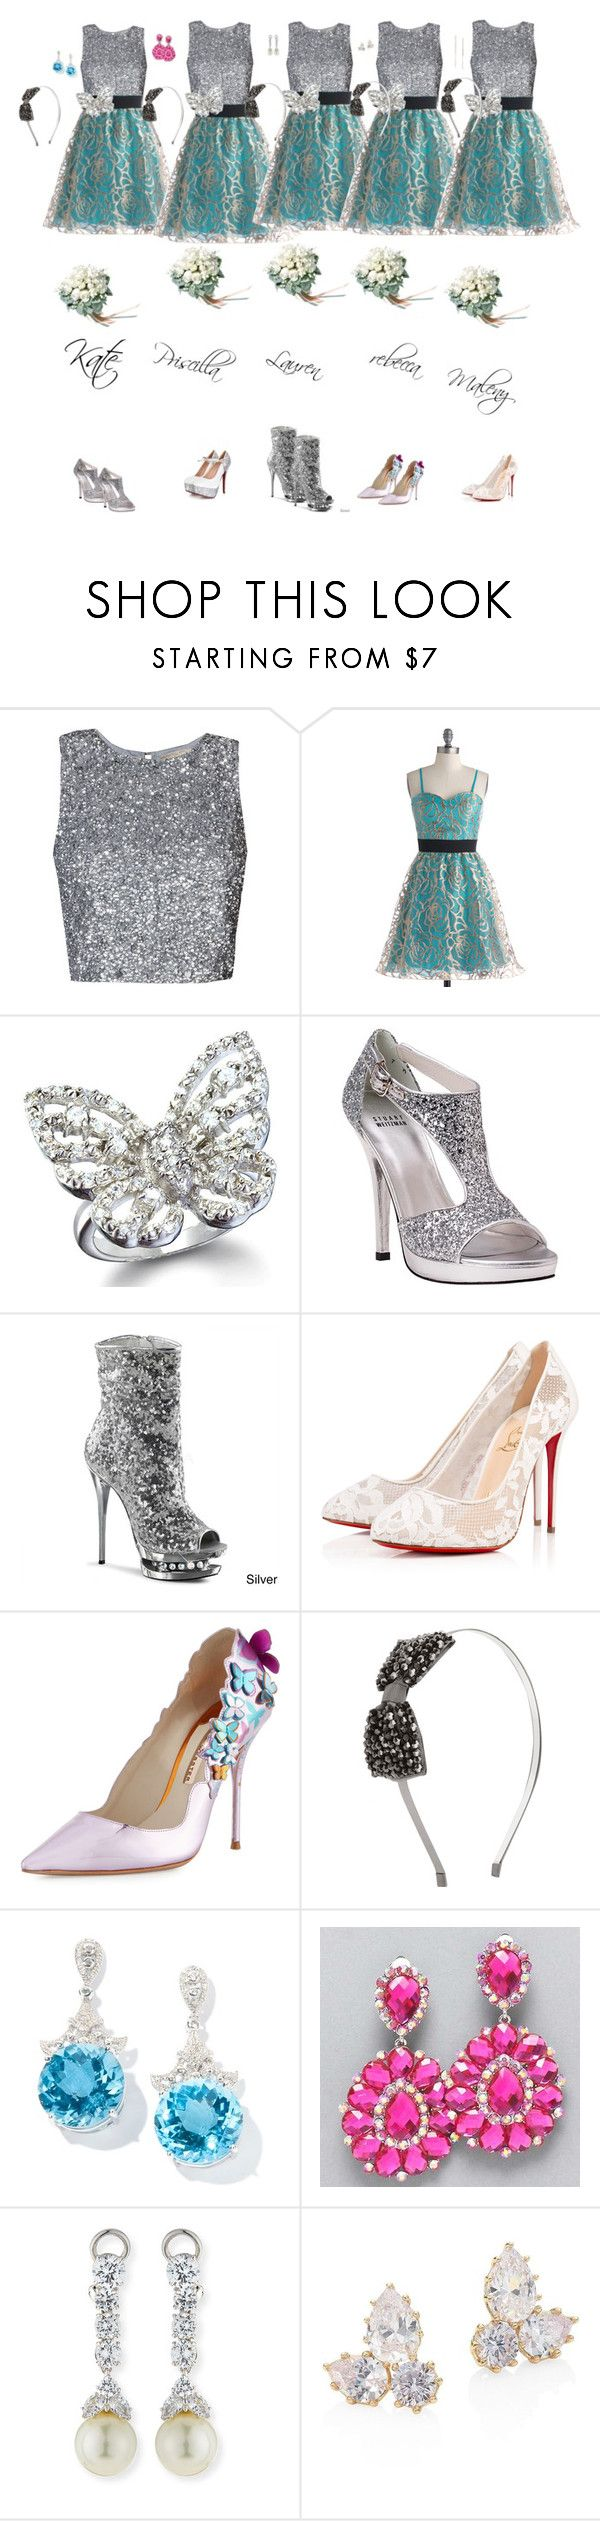 """""""Bridesmaid Isabella and Blake ll"""" by cynthiatorres-ii ❤ liked on Polyvore featuring Fantasy Jewelry Box, Stuart Weitzman, Pleaser, Christian Louboutin, Sophia Webster, Forever 21, Fantasia by DeSerio, Eddie Borgo and ZoÃ« Chicco"""